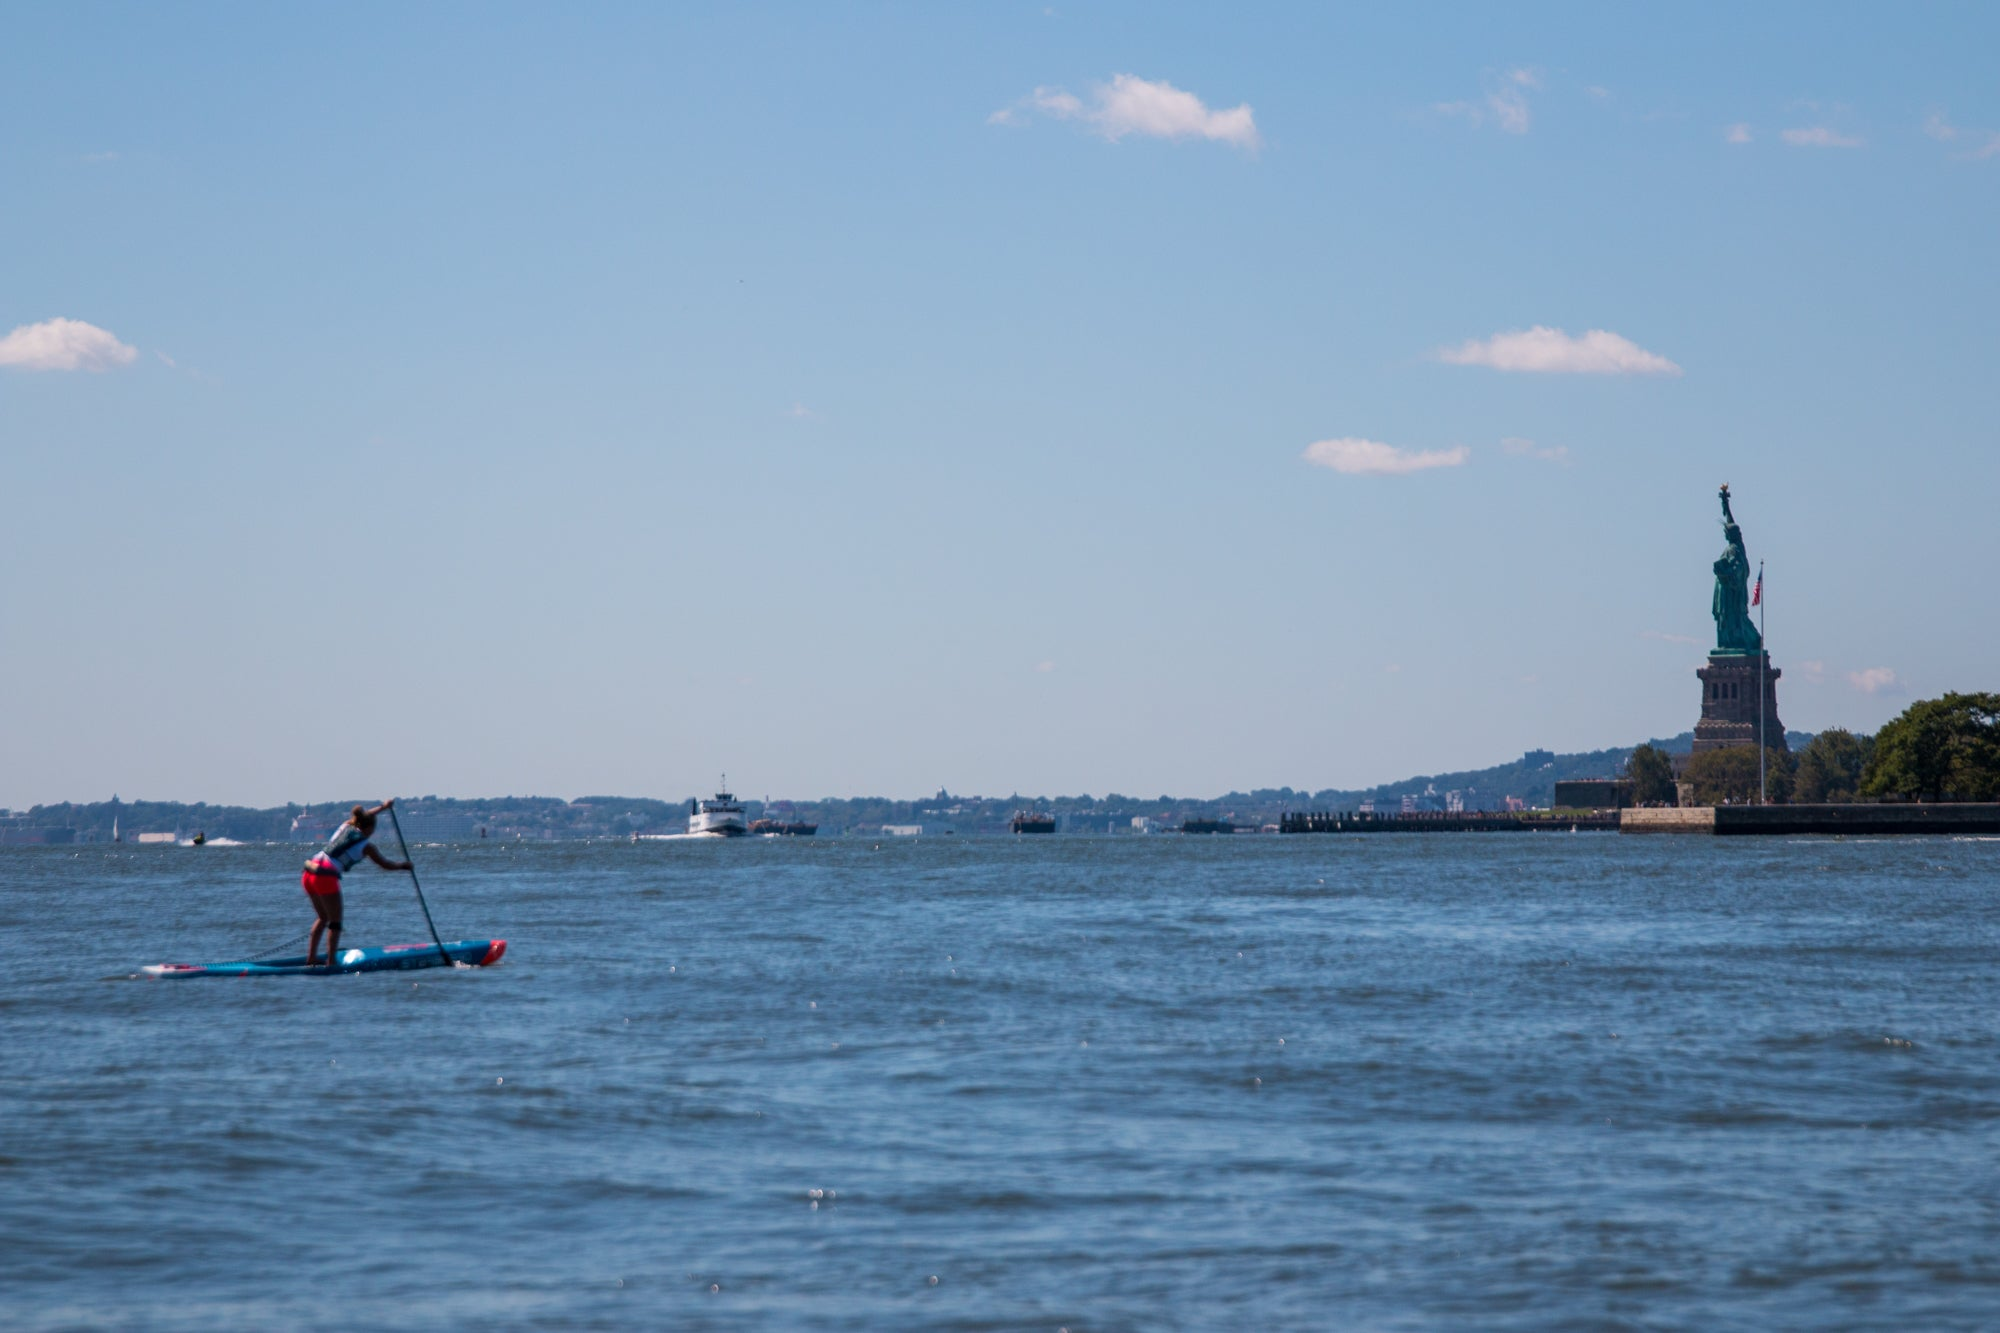 SUP racing in front of the Statue of Liberty - NY SUP Open APP World Tour 2019